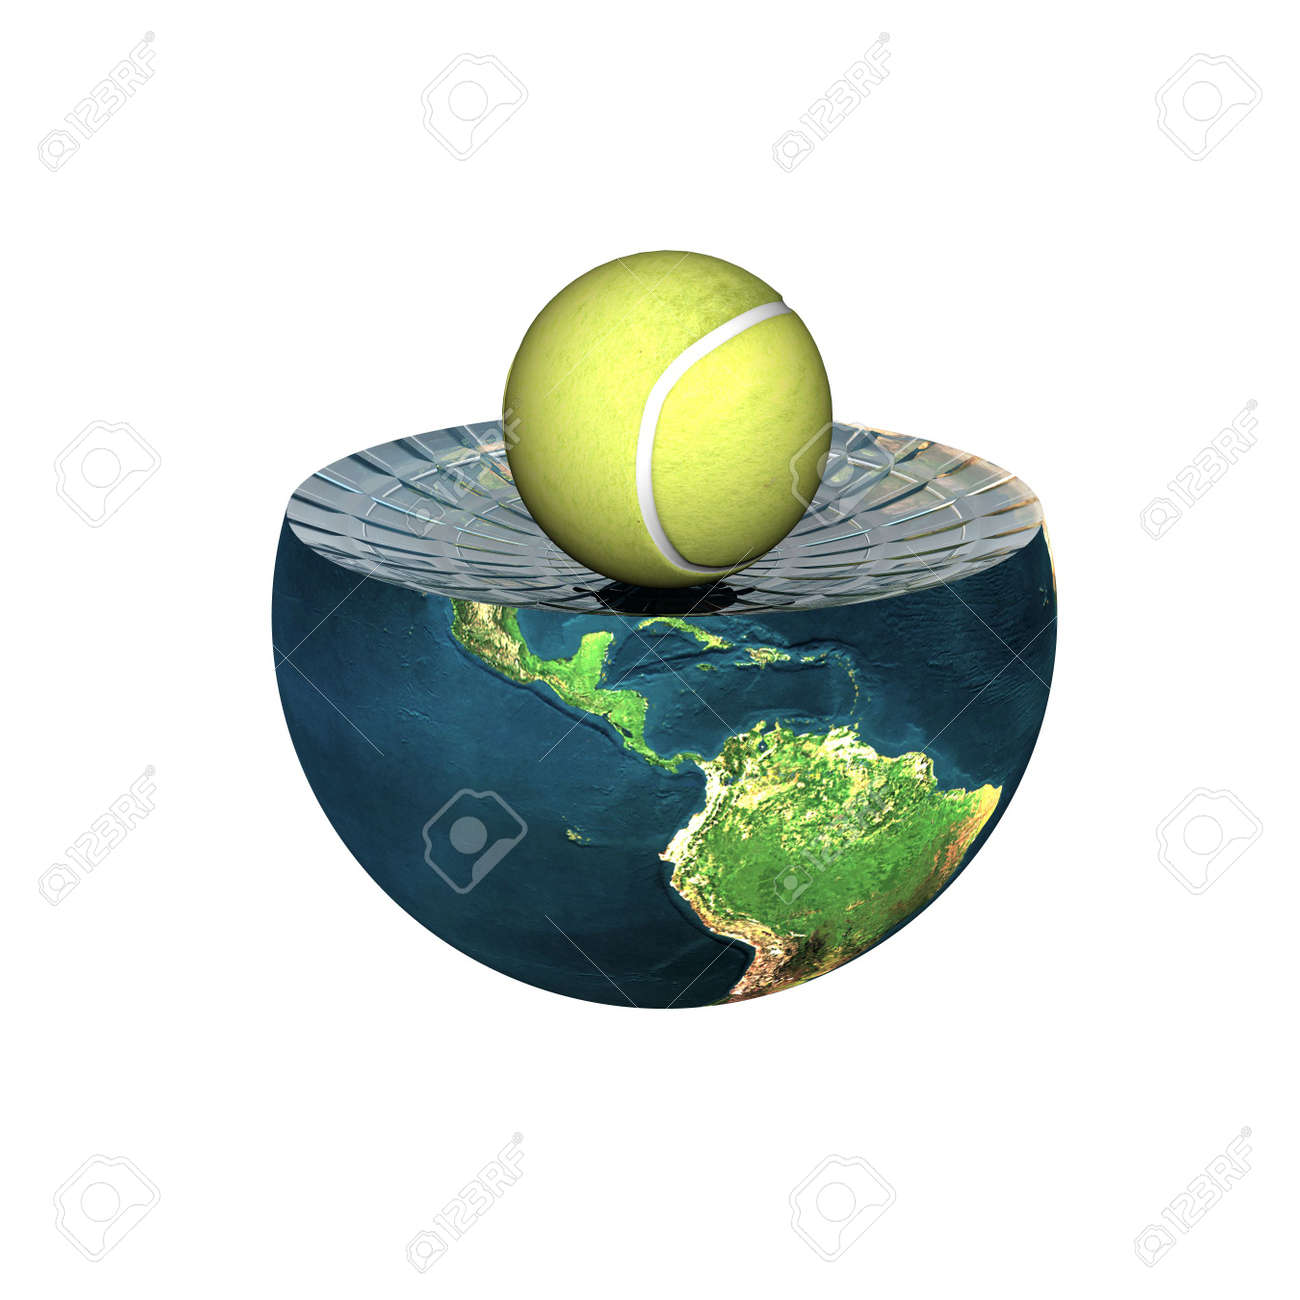 tennis ball on earth hemisphere isolated on a white Stock Photo - 4704500